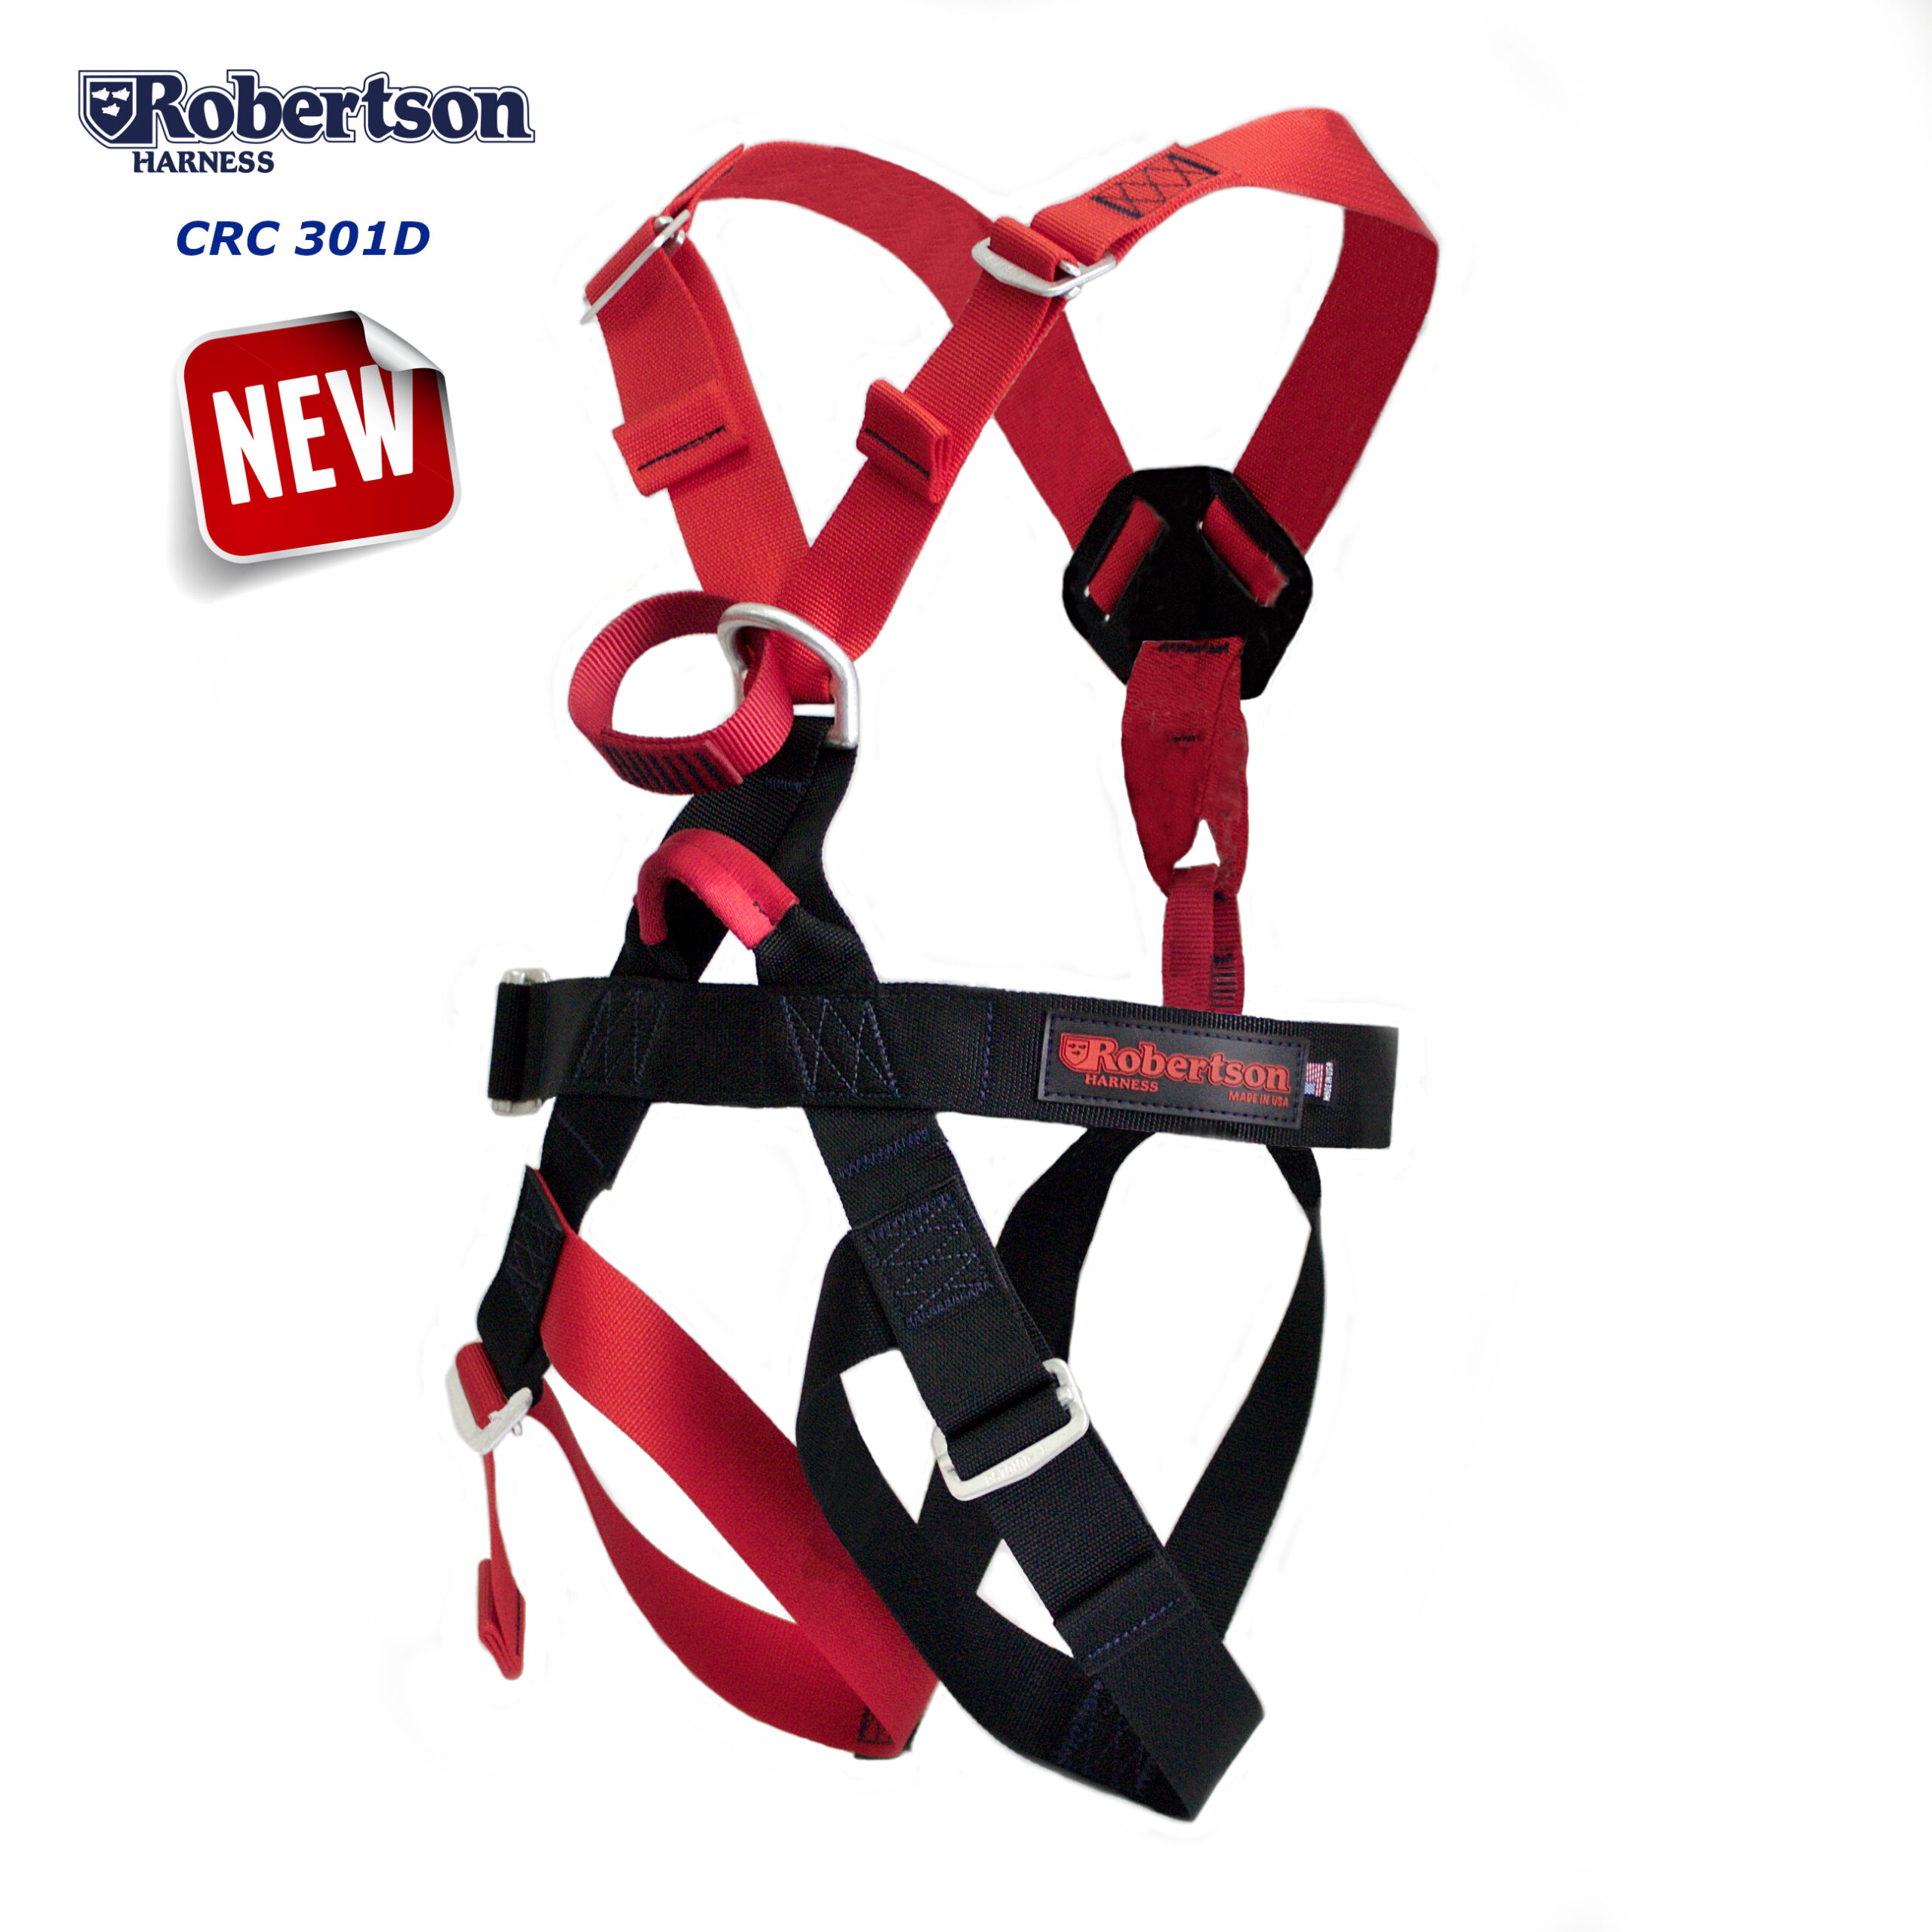 CRC 301D ( Small / Red Belay )